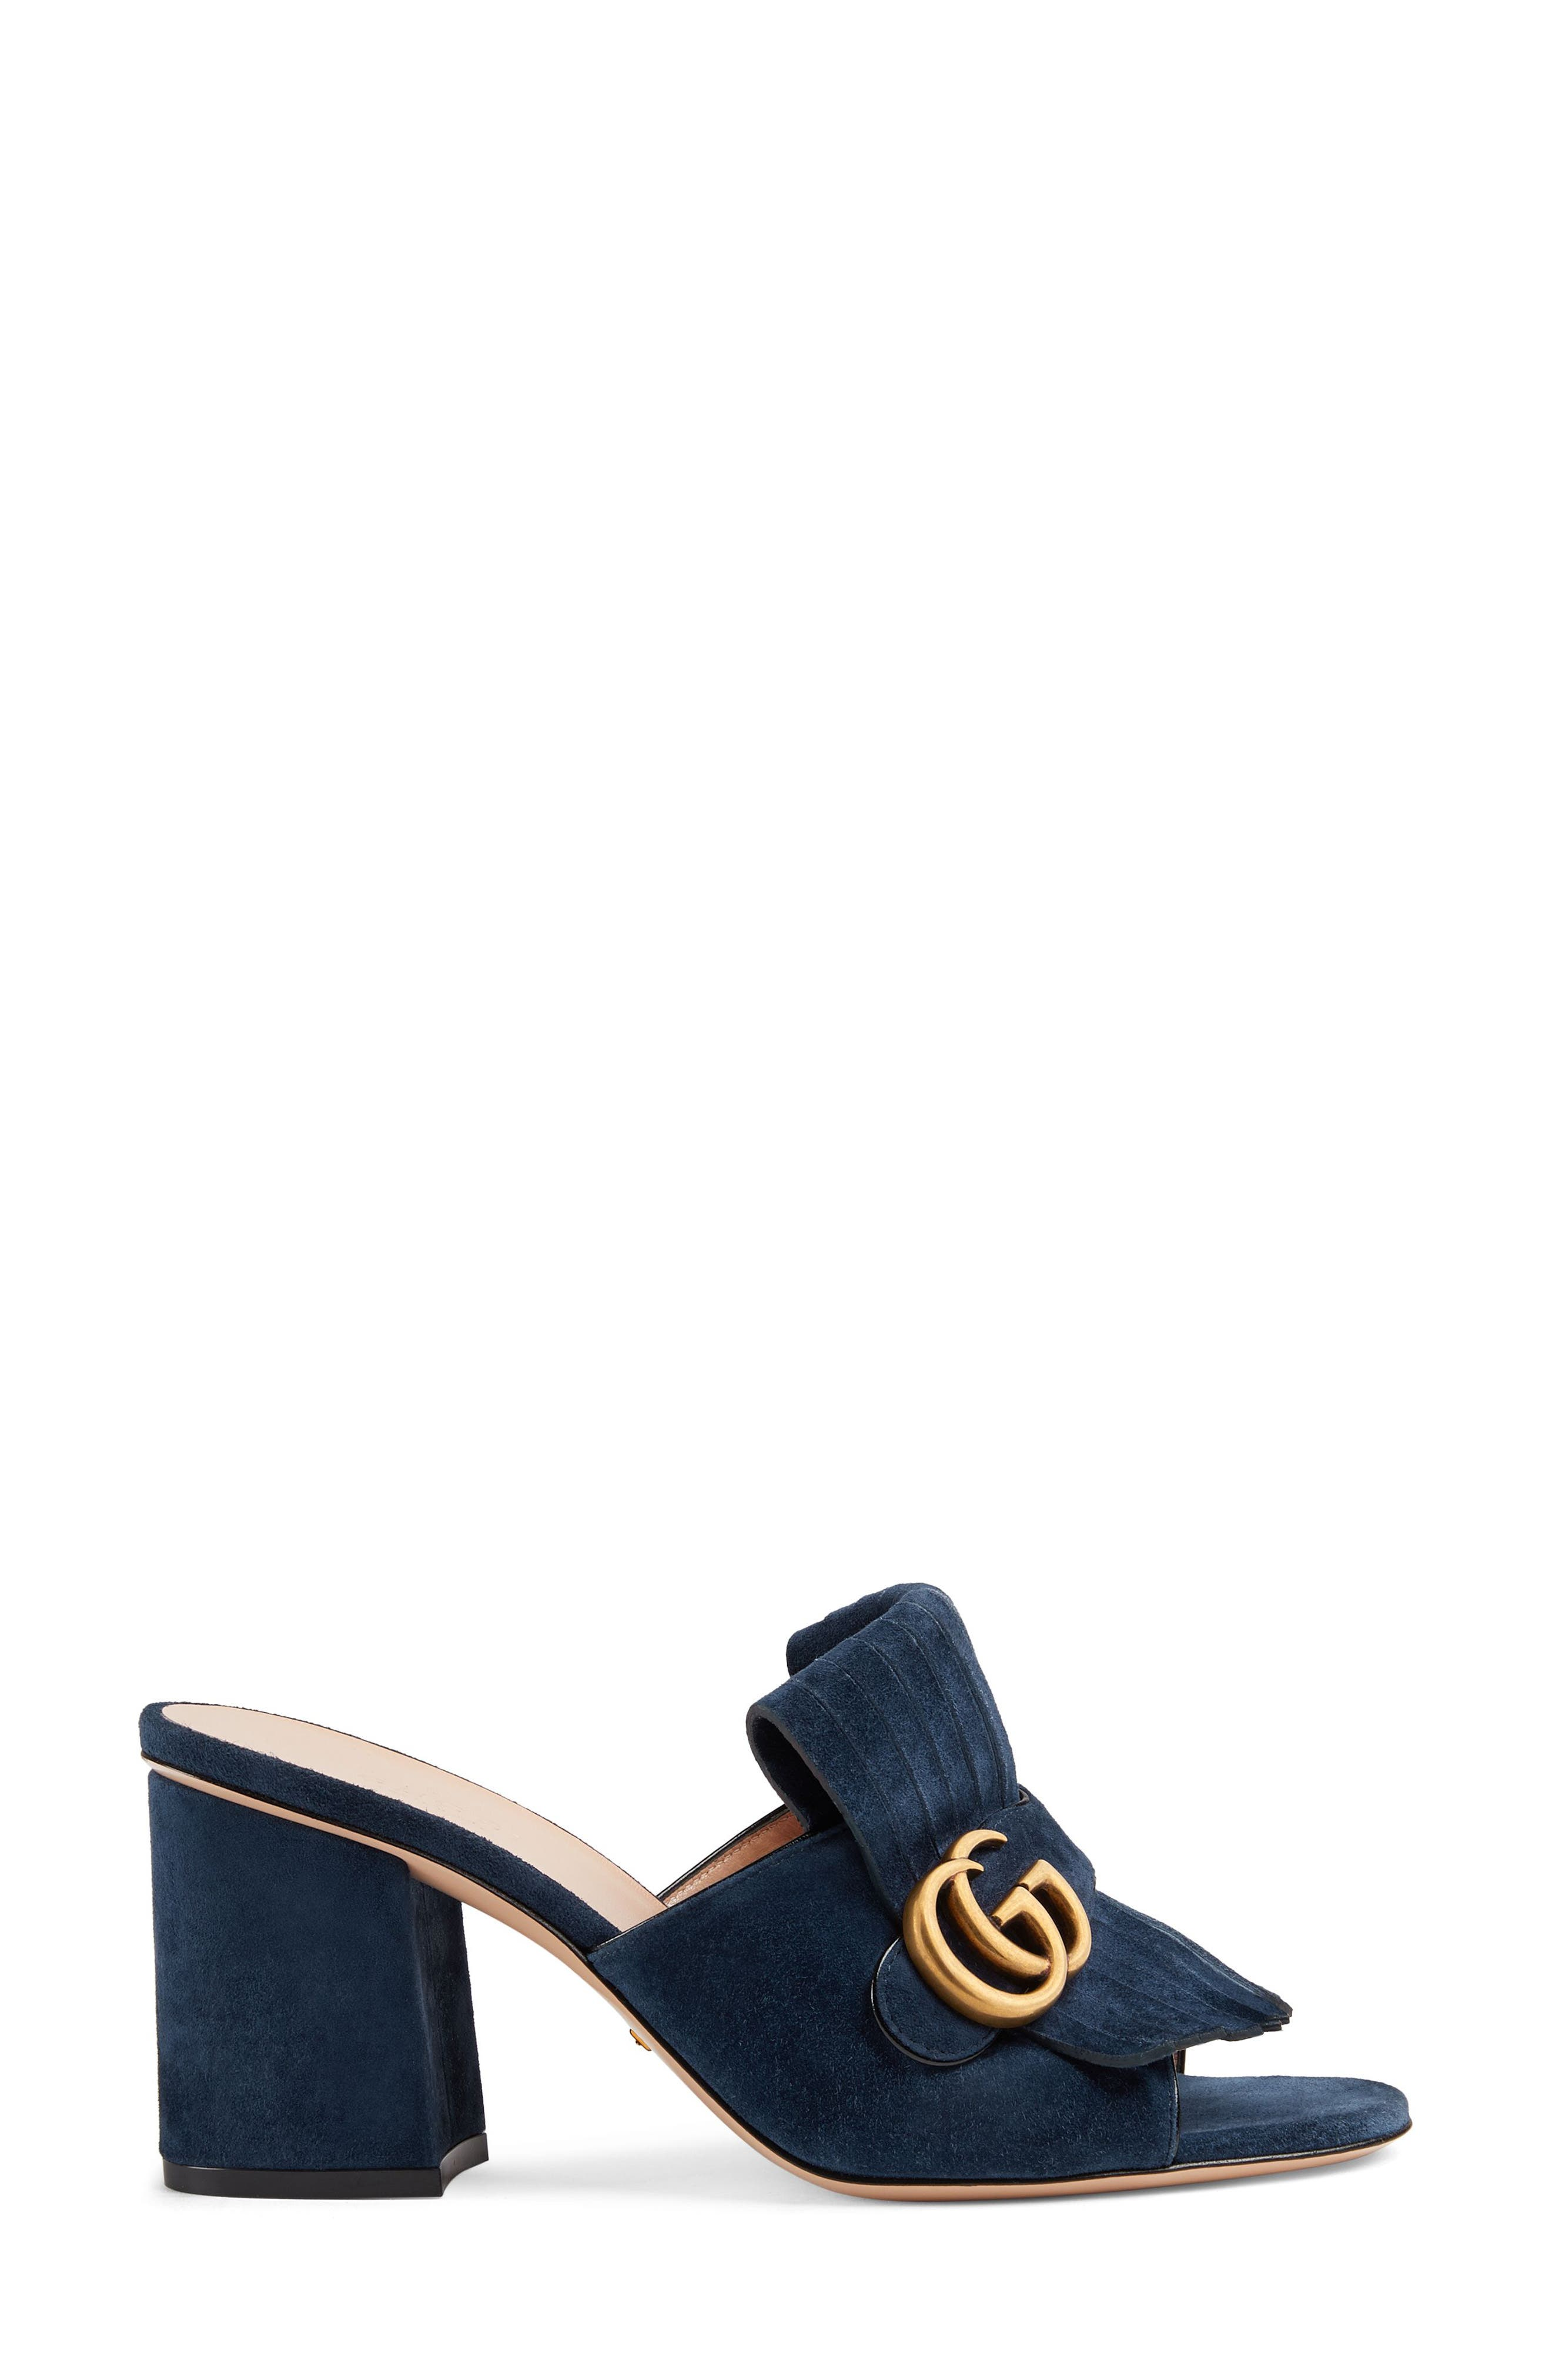 GUCCI, GG Marmont Peep Toe Mule, Alternate thumbnail 2, color, BLUE INK SUEDE